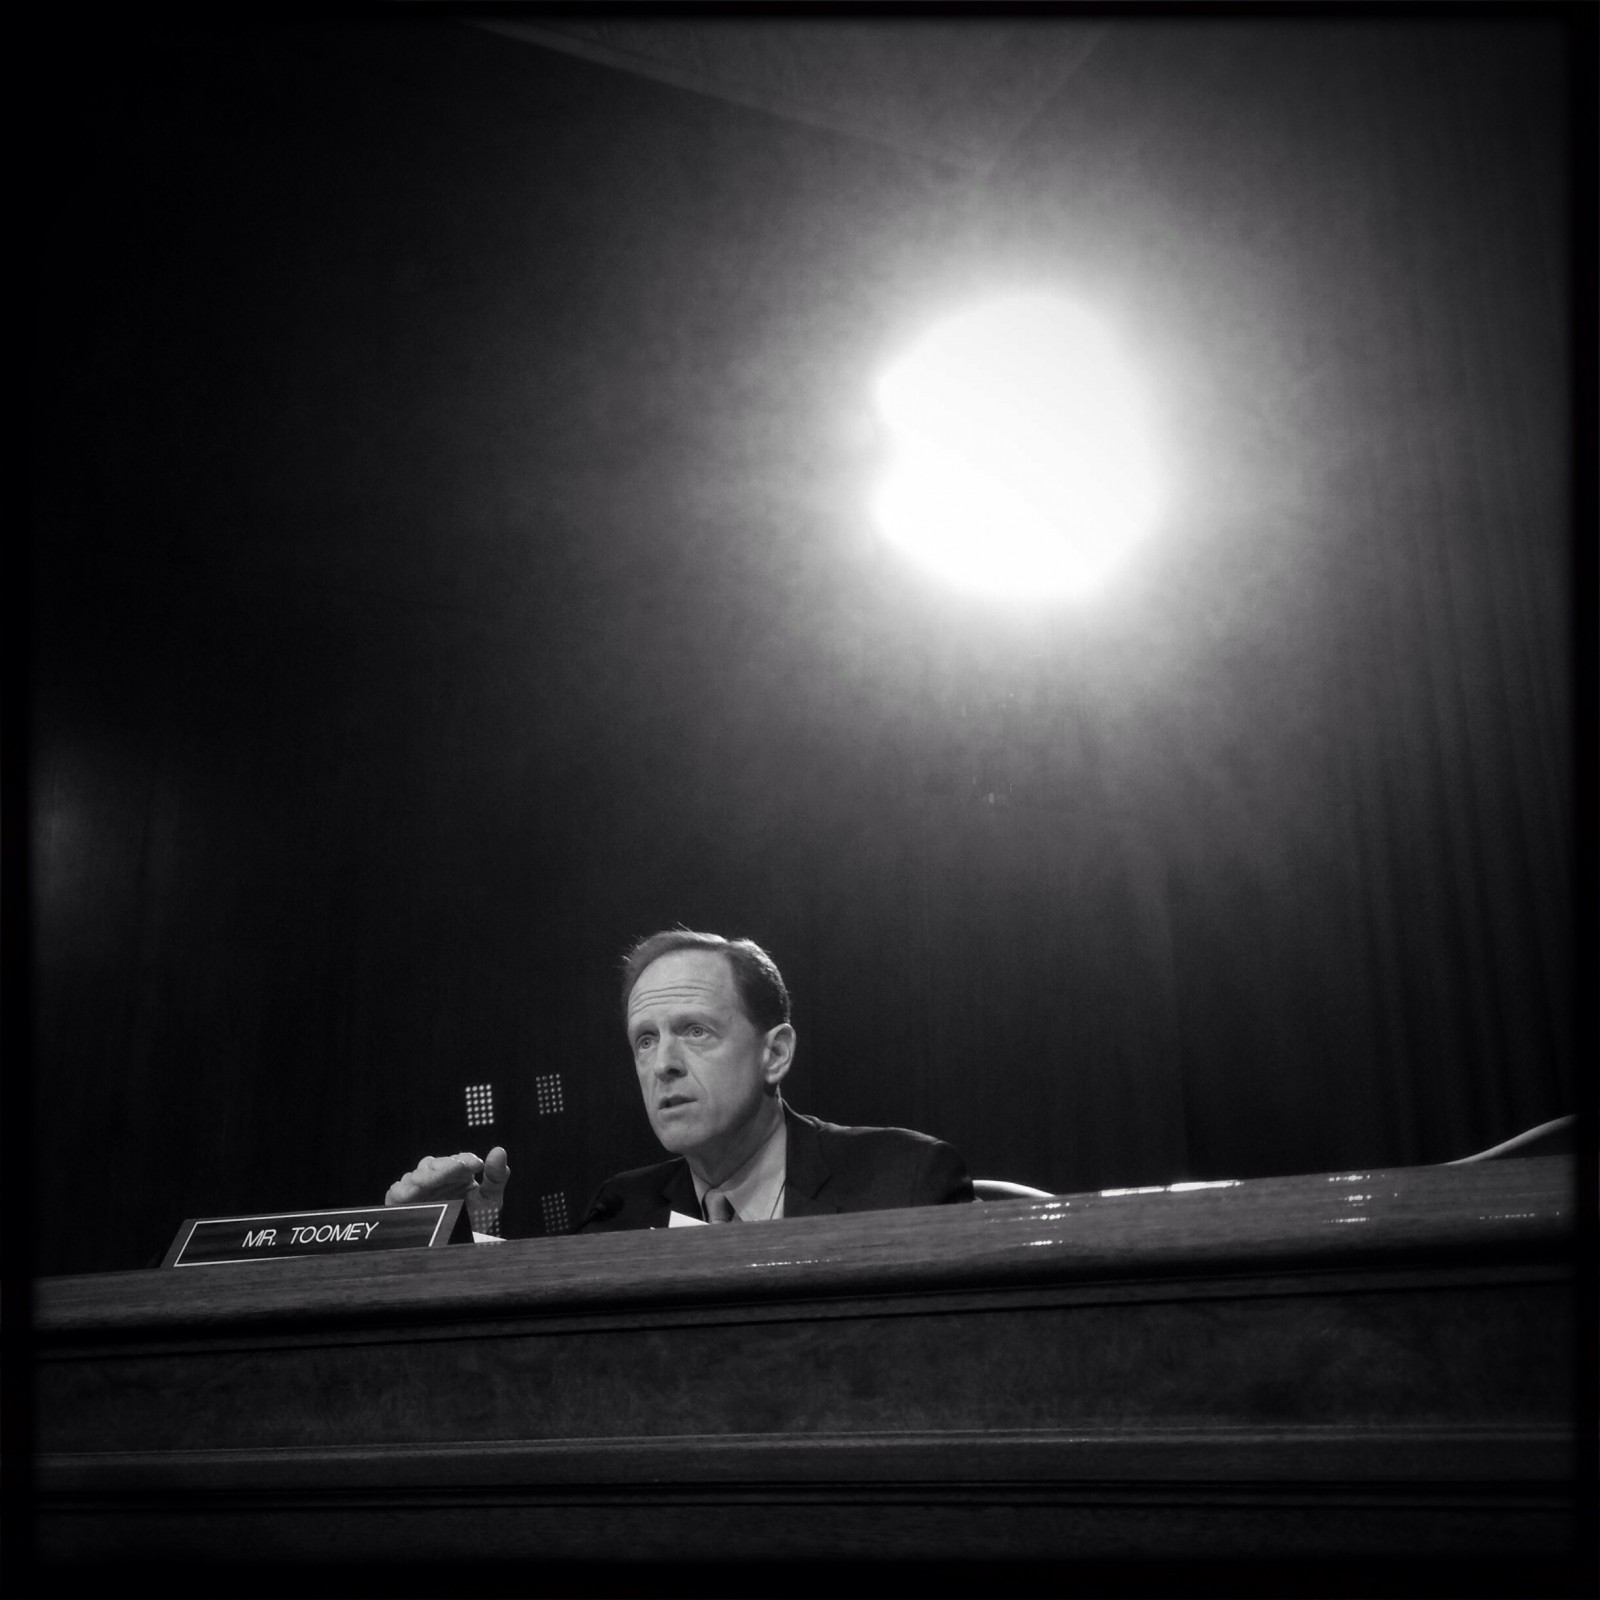 Senator Pat Toomey (R-PA) questions Janet Yellen during her confirmation hearing to be the next Chairperson of the Federal Reserve Bank.